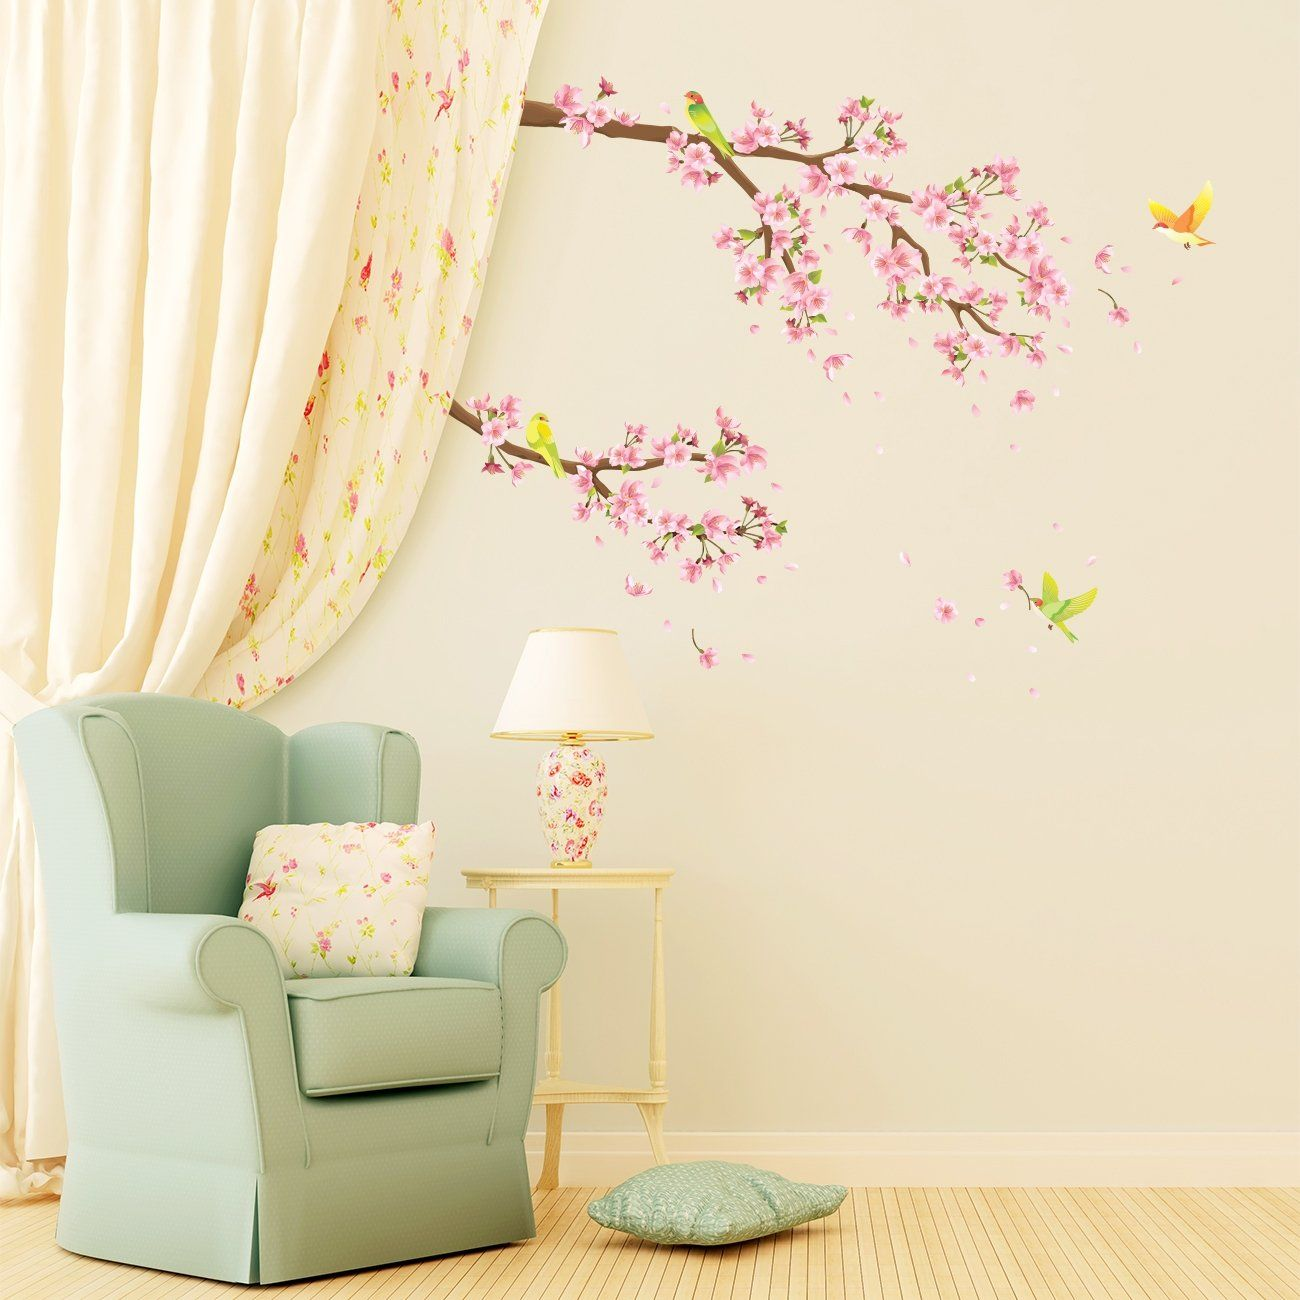 Decowall Dw1303 Cherry Blossoms And Birds Kids Wall Decals Wall